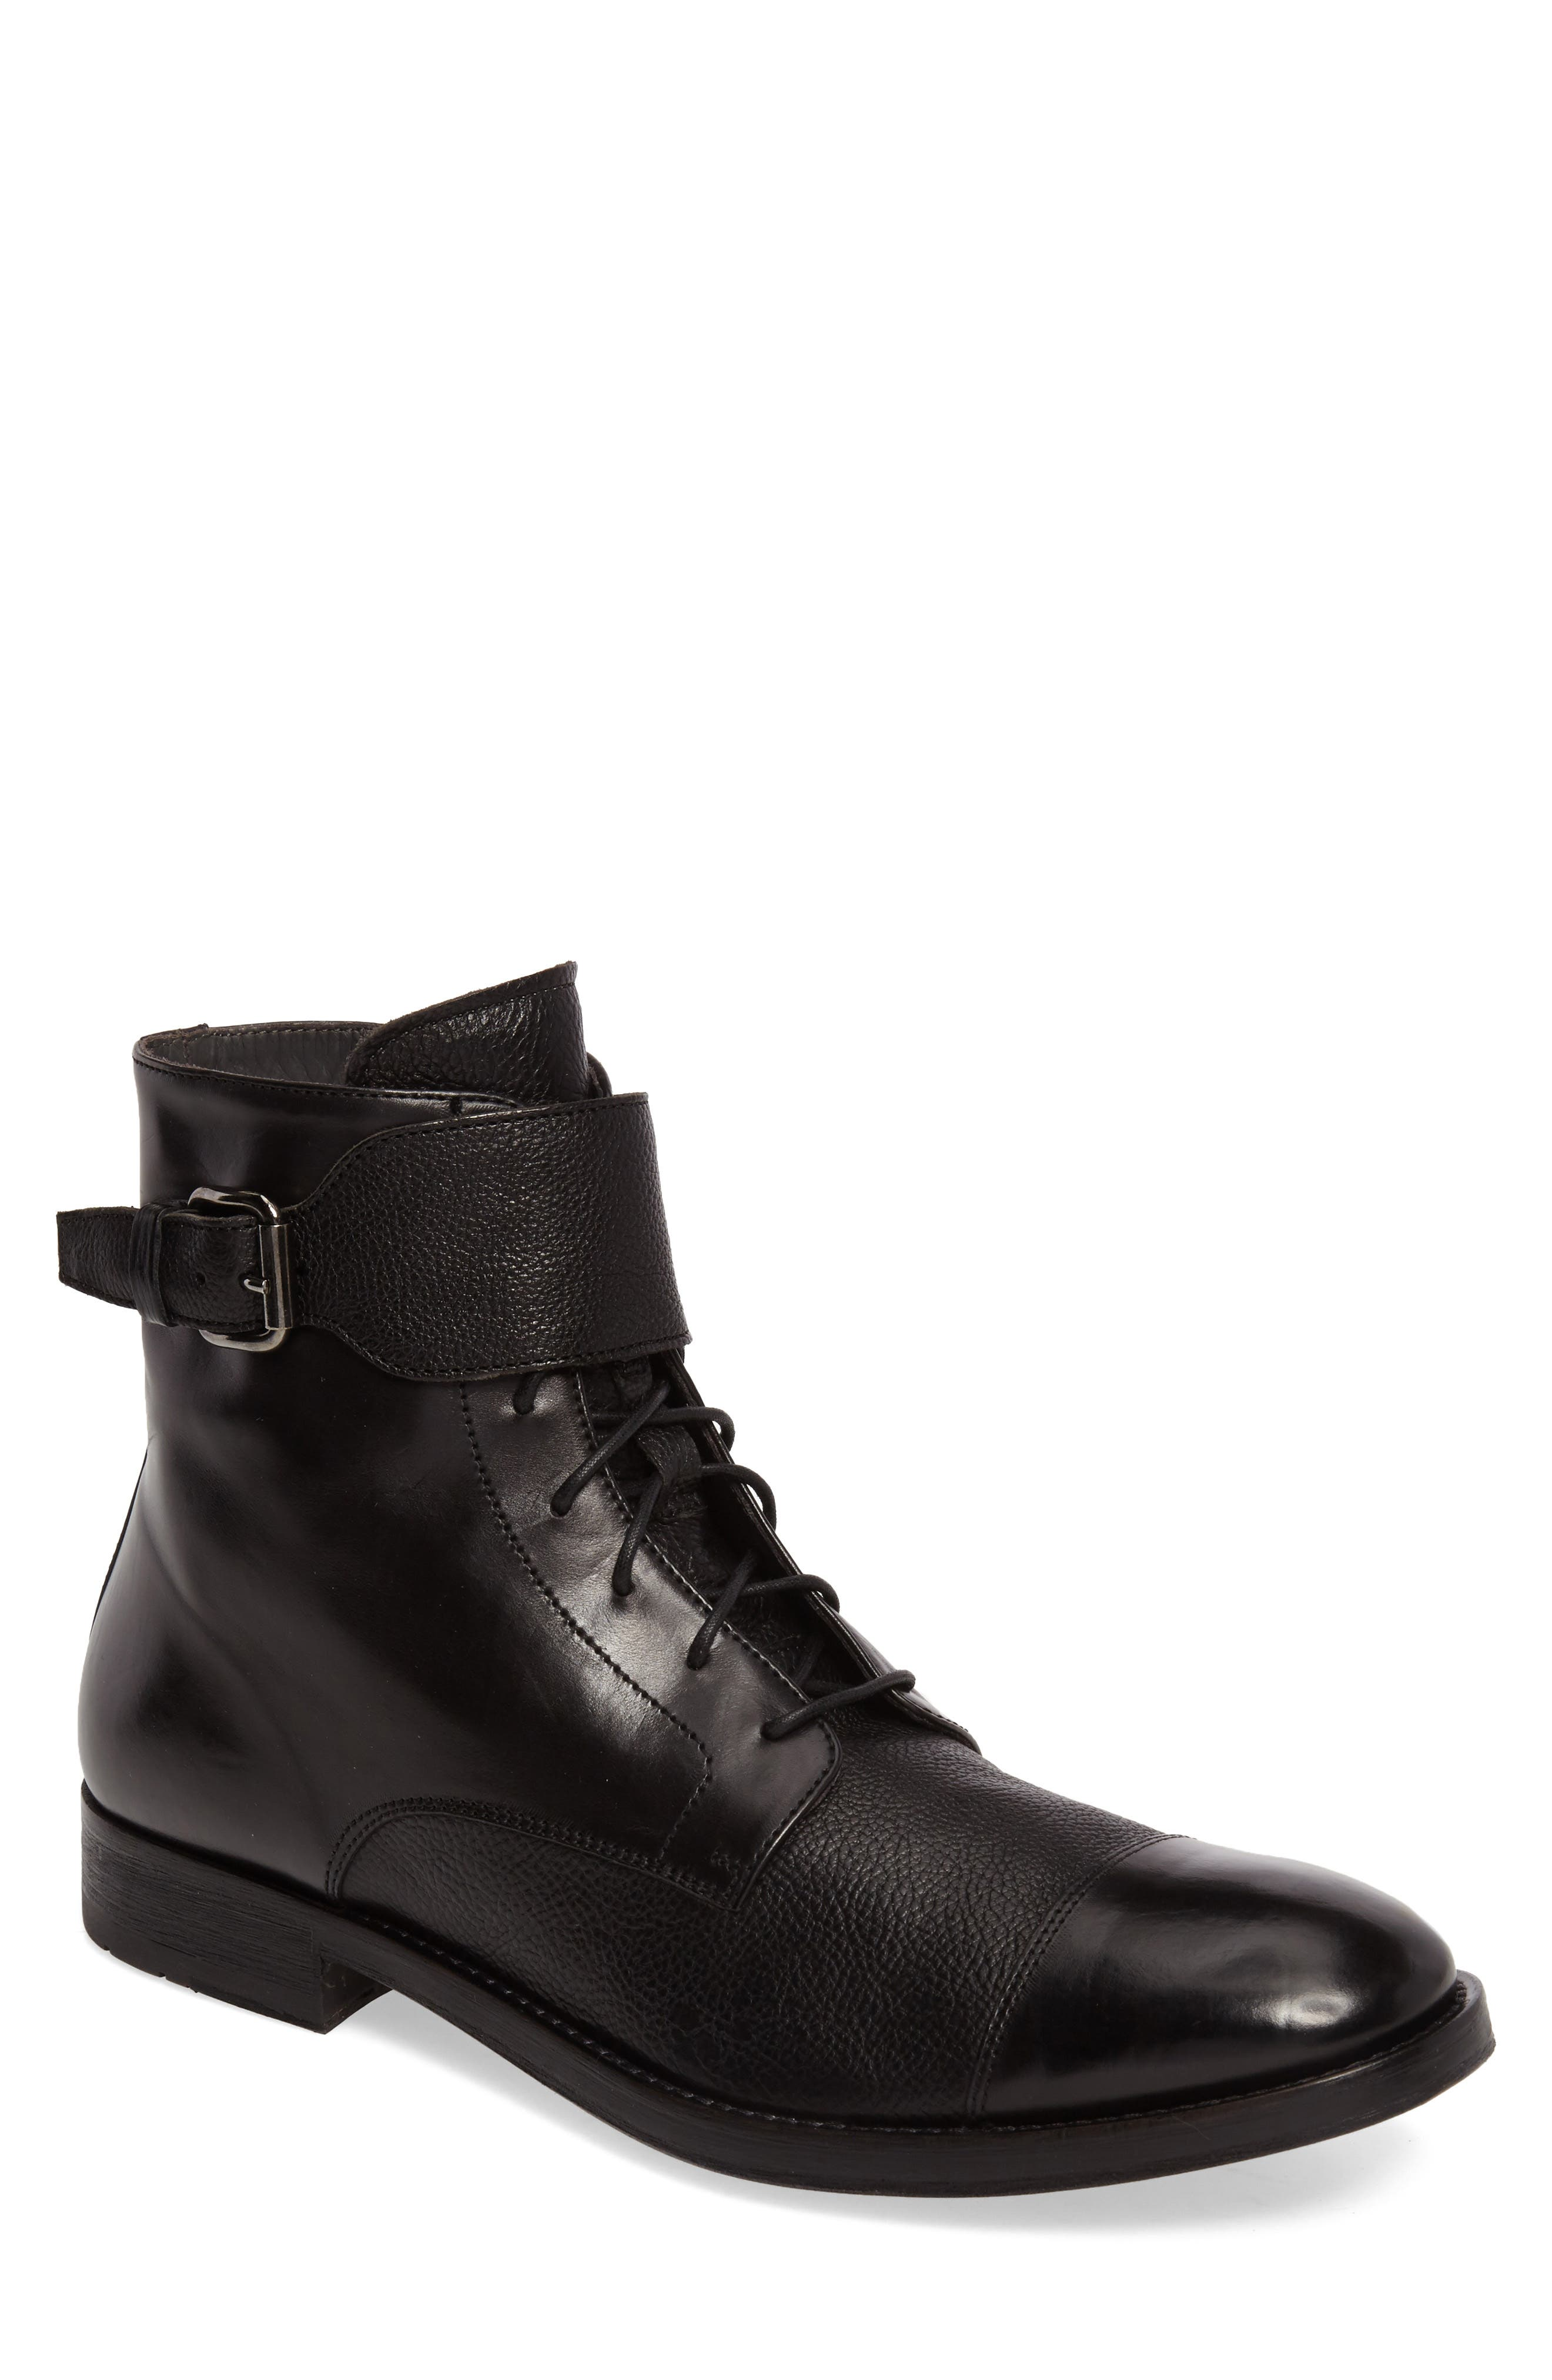 Flyboy Cap Toe Boot,                         Main,                         color, 001